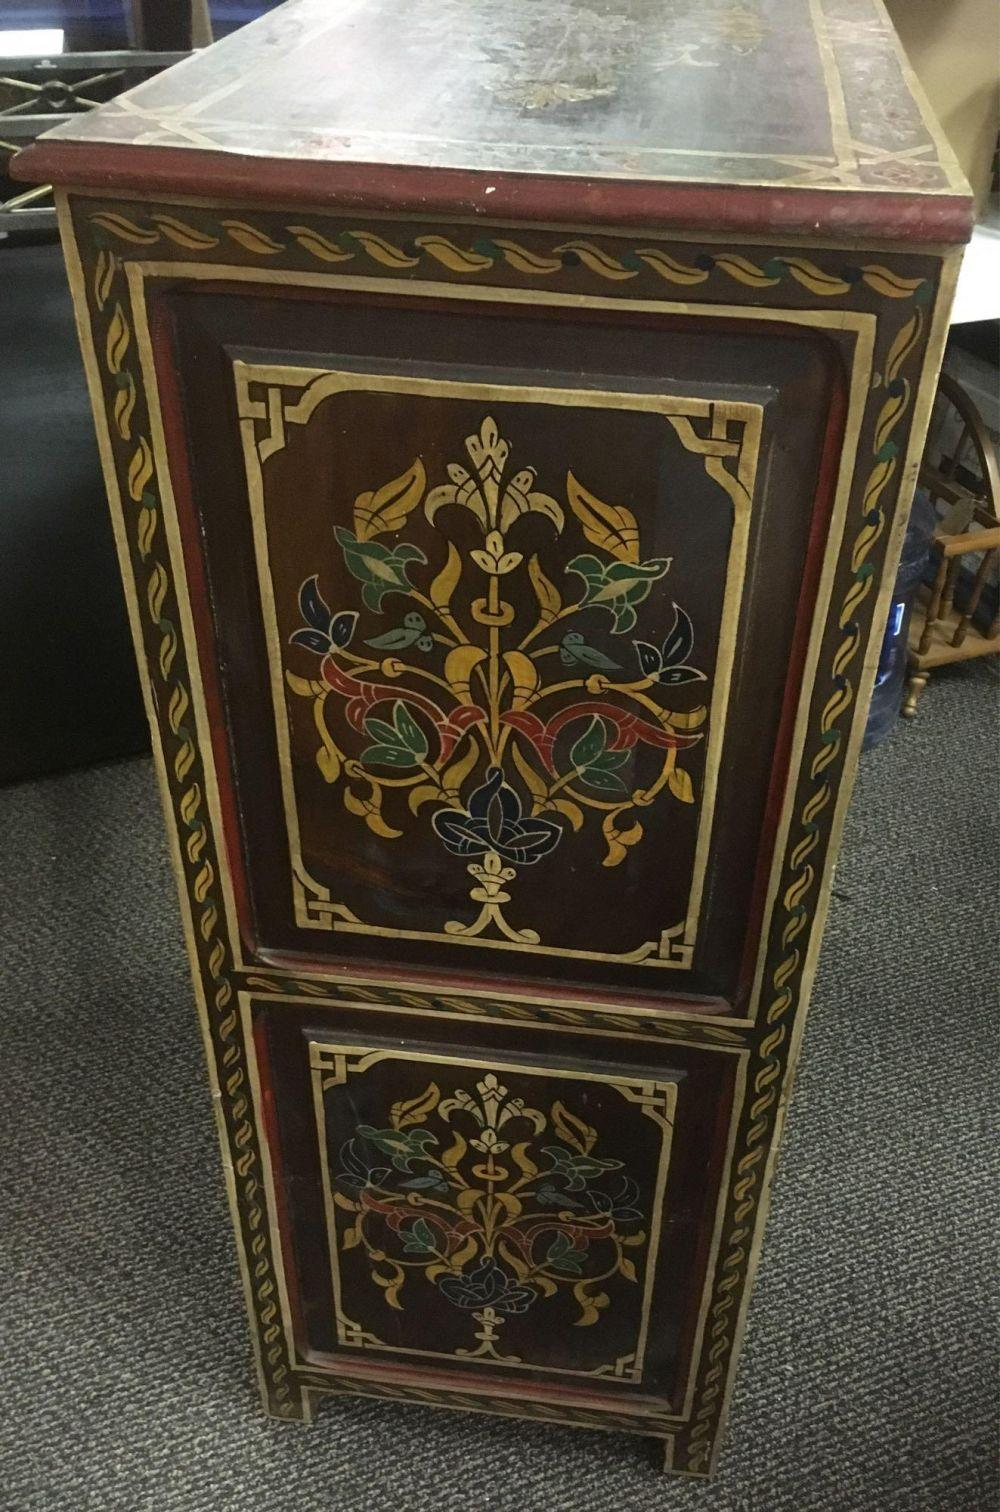 Lot 674: Vintage Import Moroccan Hand Painted Upright Cabinet with Drawers